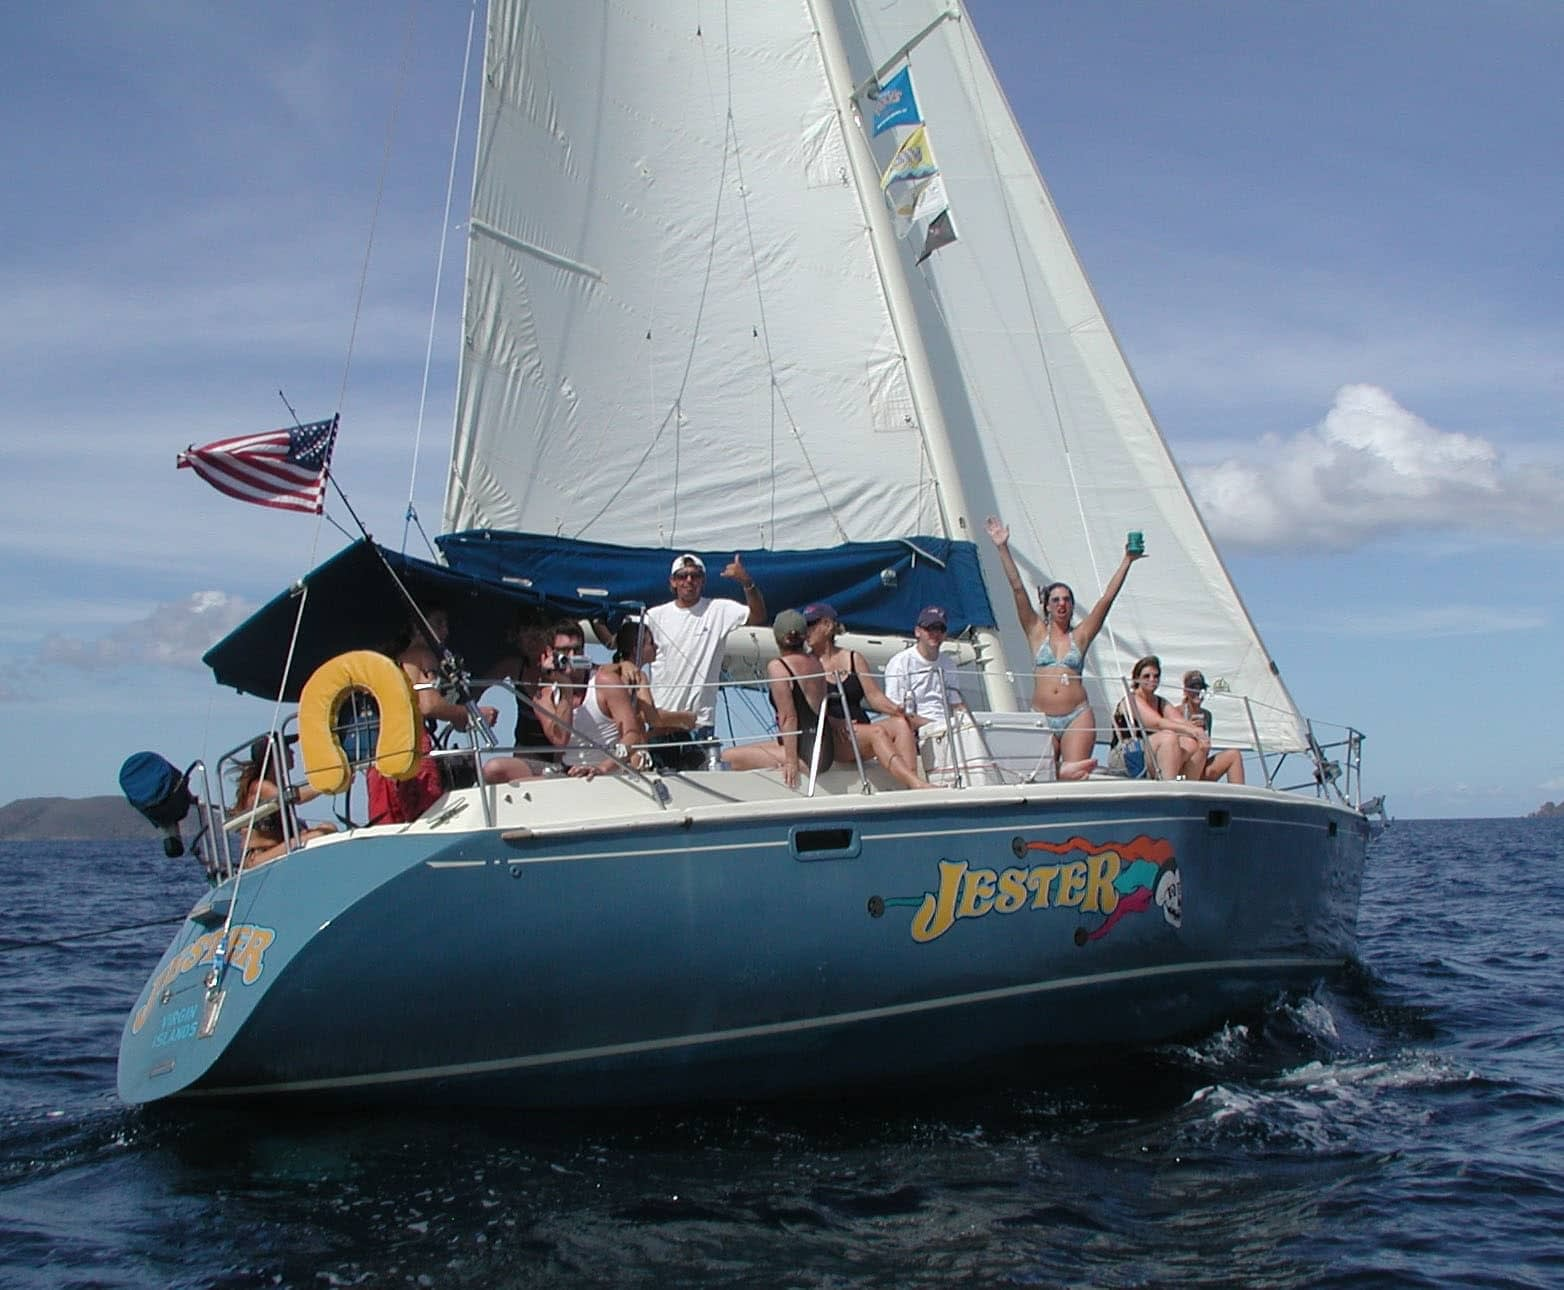 Legendary Jester Sailing & Snorkeling Adventures